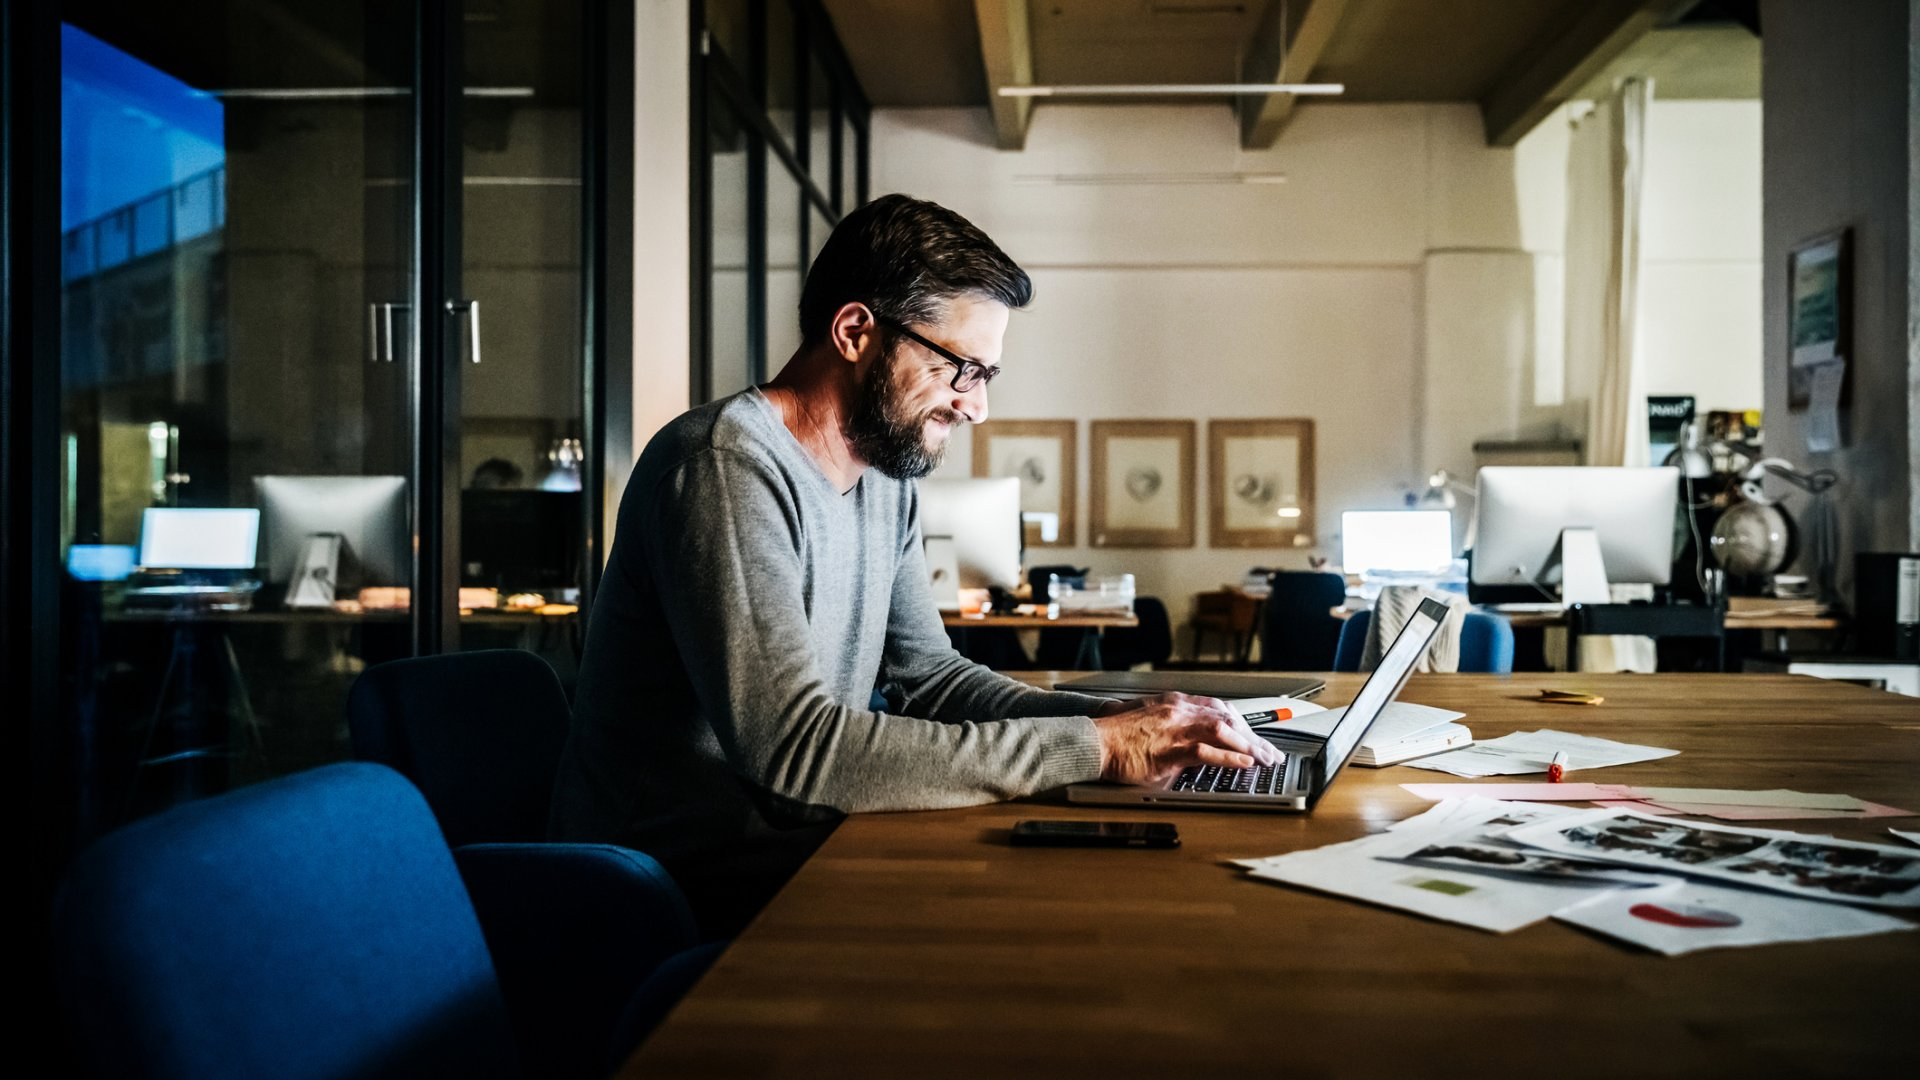 3 Flexible Work Schedules Your Employees May Love